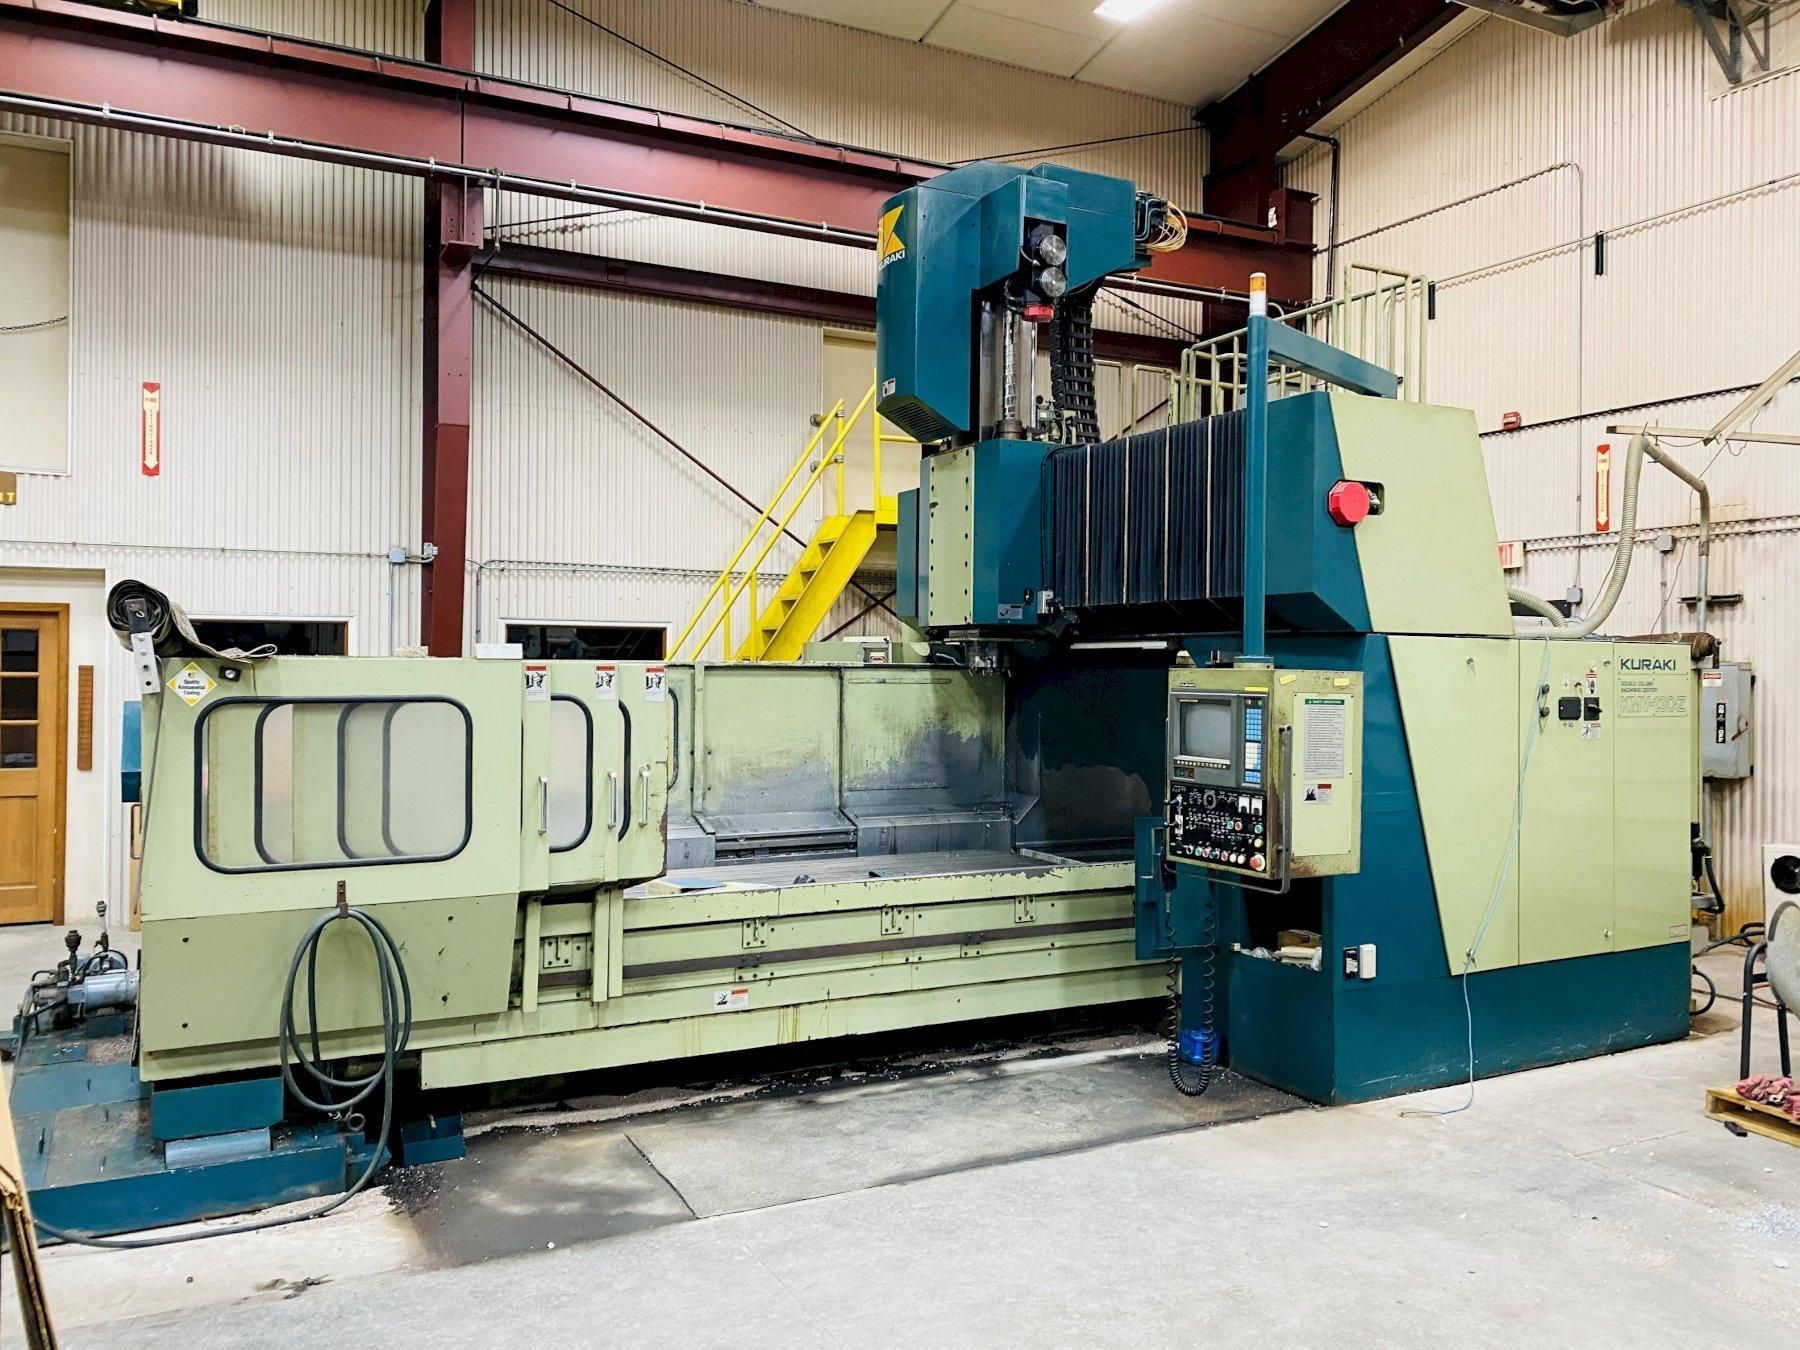 KURAKI MODEL KMV-130-Z 3-AXIS DOUBLE COLUMN MACHINING CENTER. STOCK # 1264420